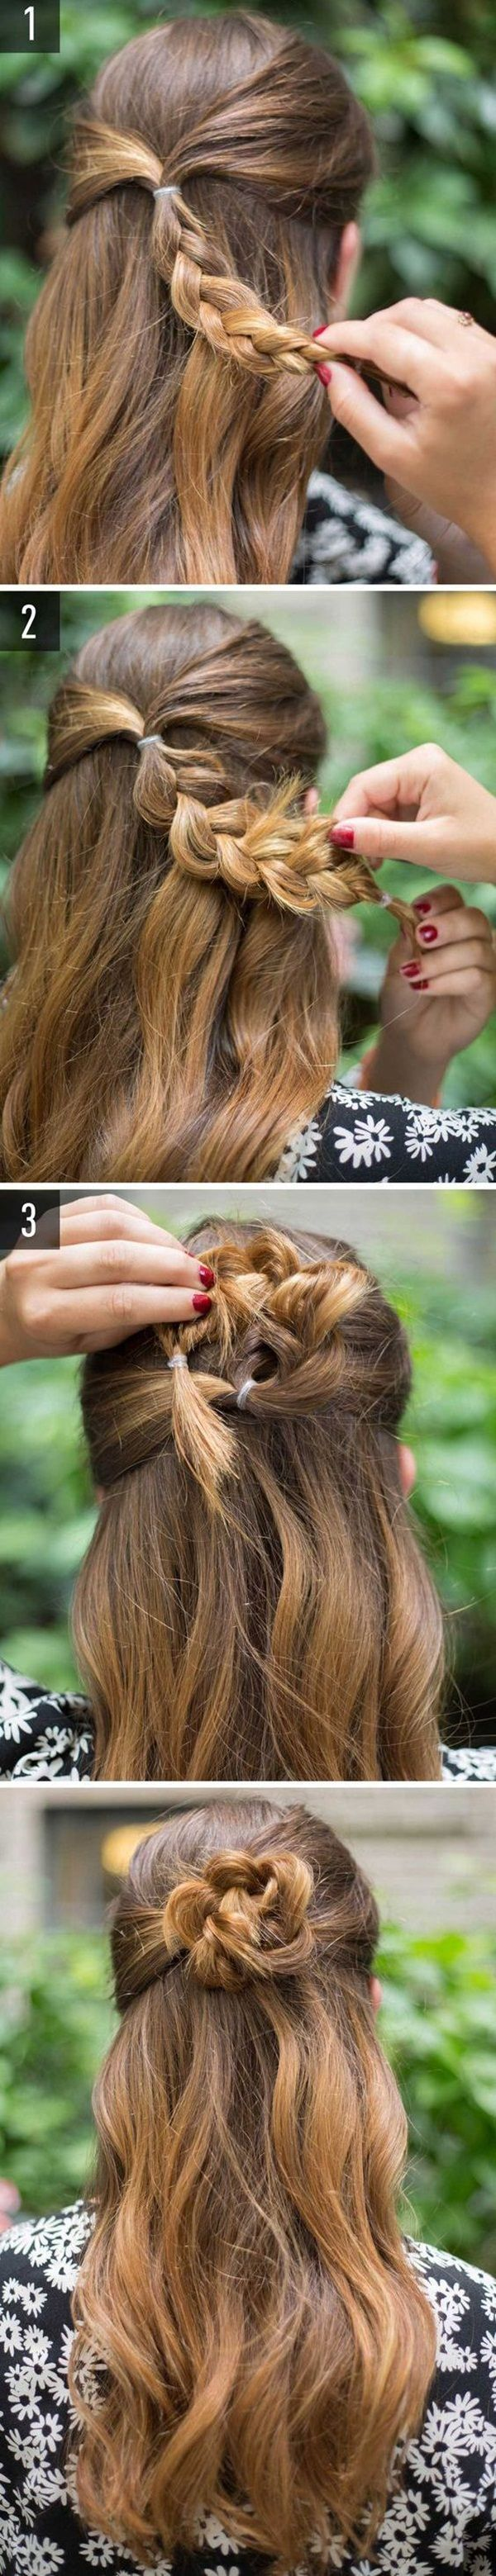 easy hairstyles for schools to try in short girl